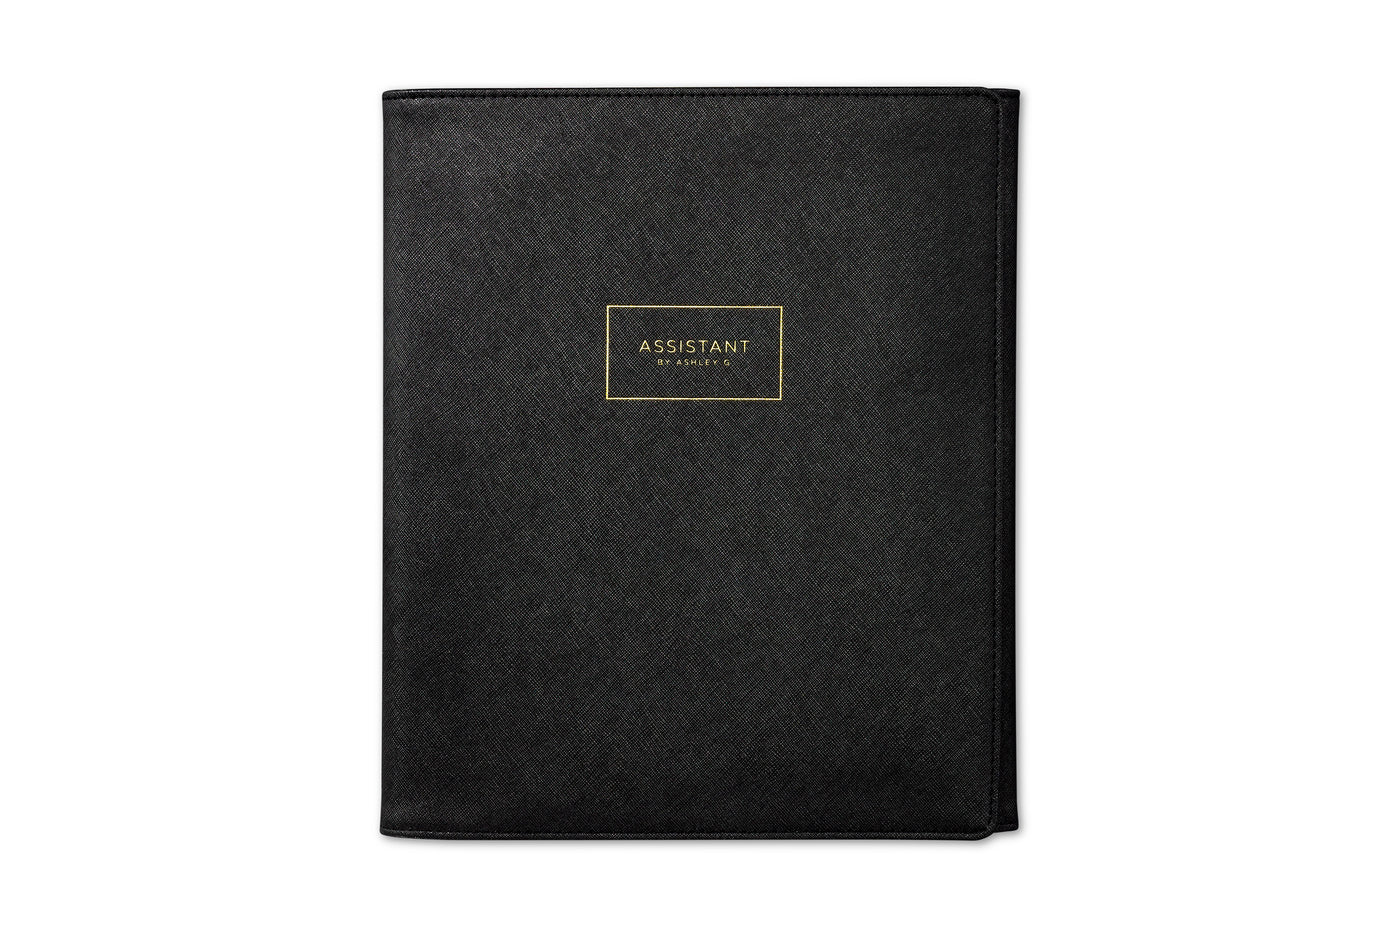 assistant by Ashley G, black trifold portfolio. with gold embossing